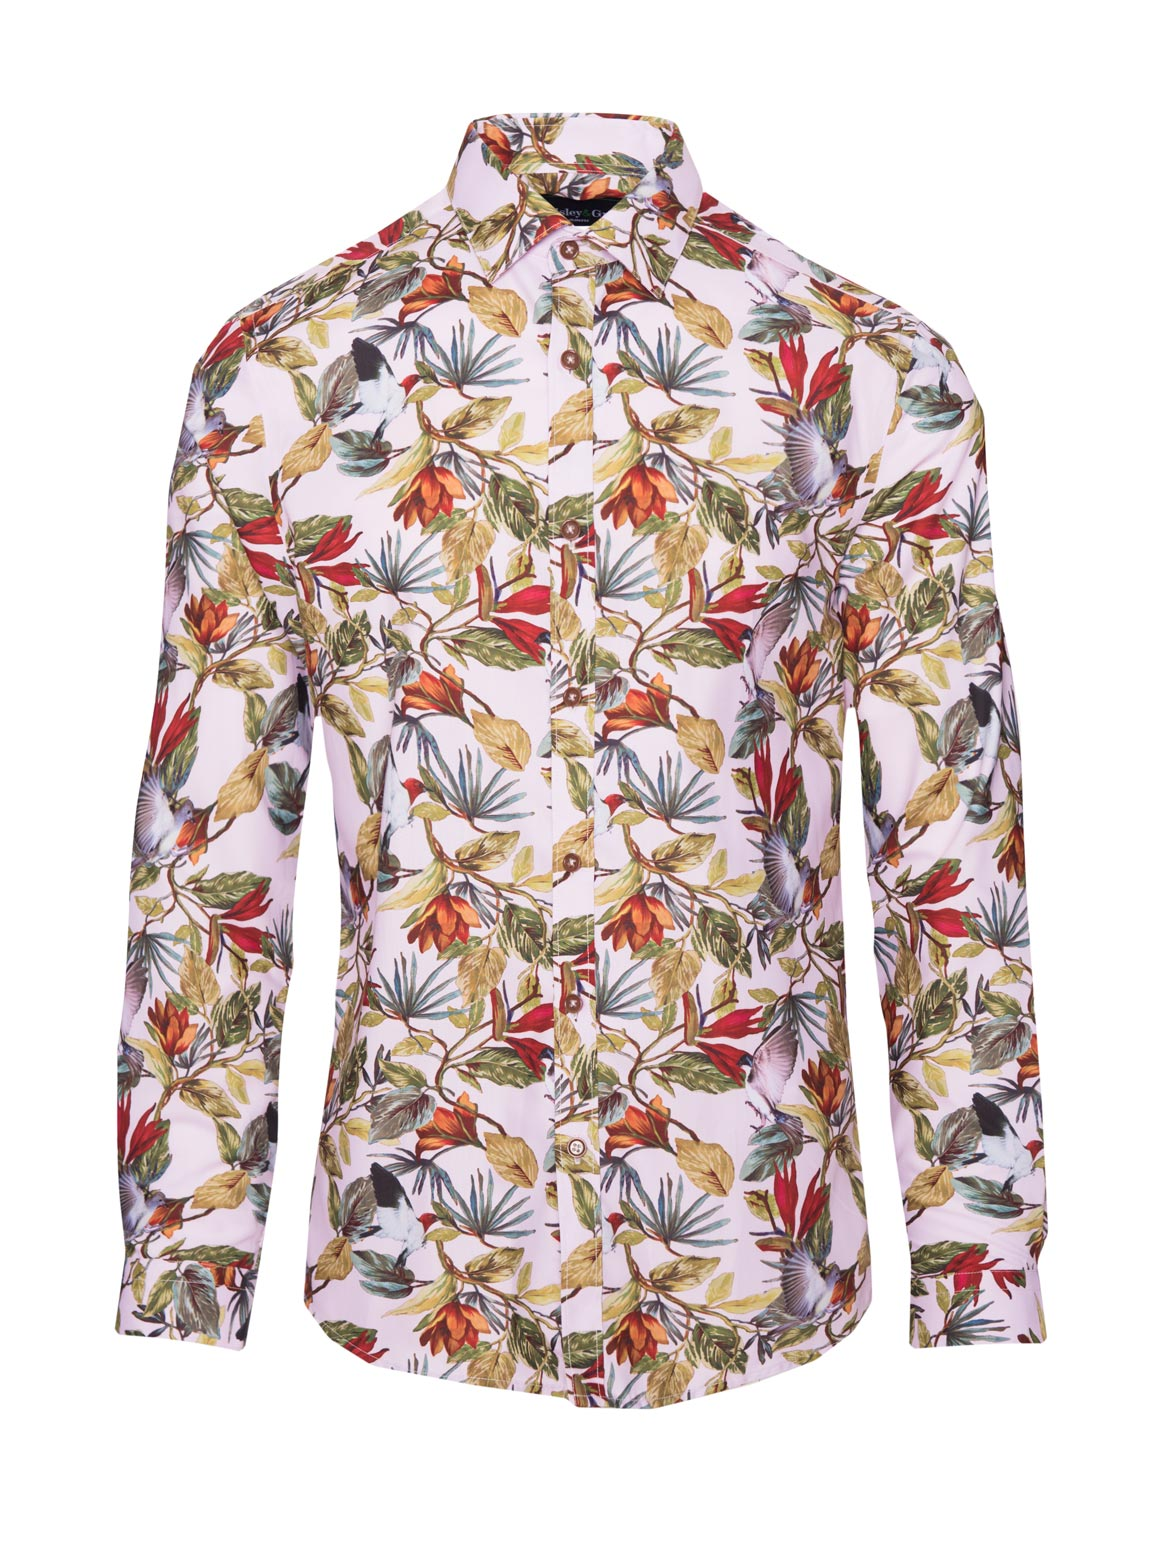 paisley & gray light pink with birds slim fit long sleeve spread collar dress shirt 2272W